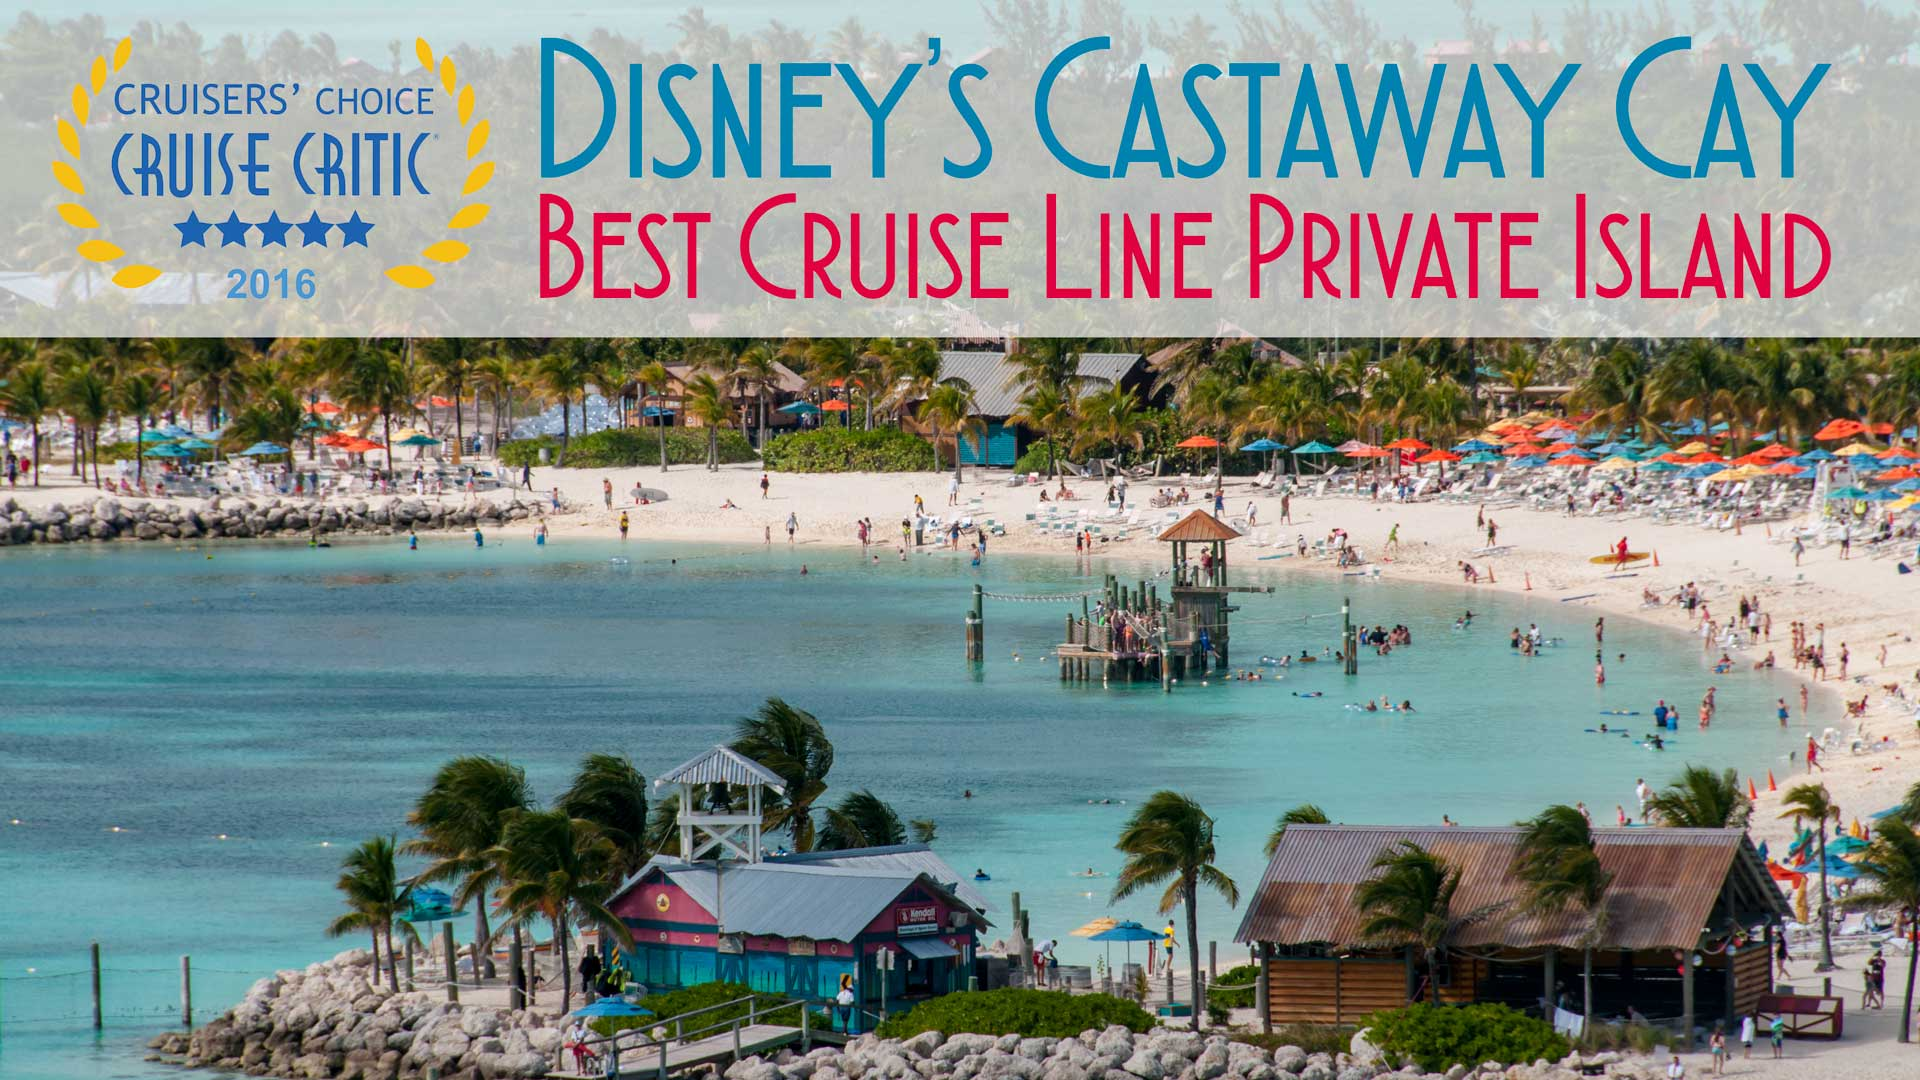 Cruise Critic 2016 Best Private Island Castaway Cay